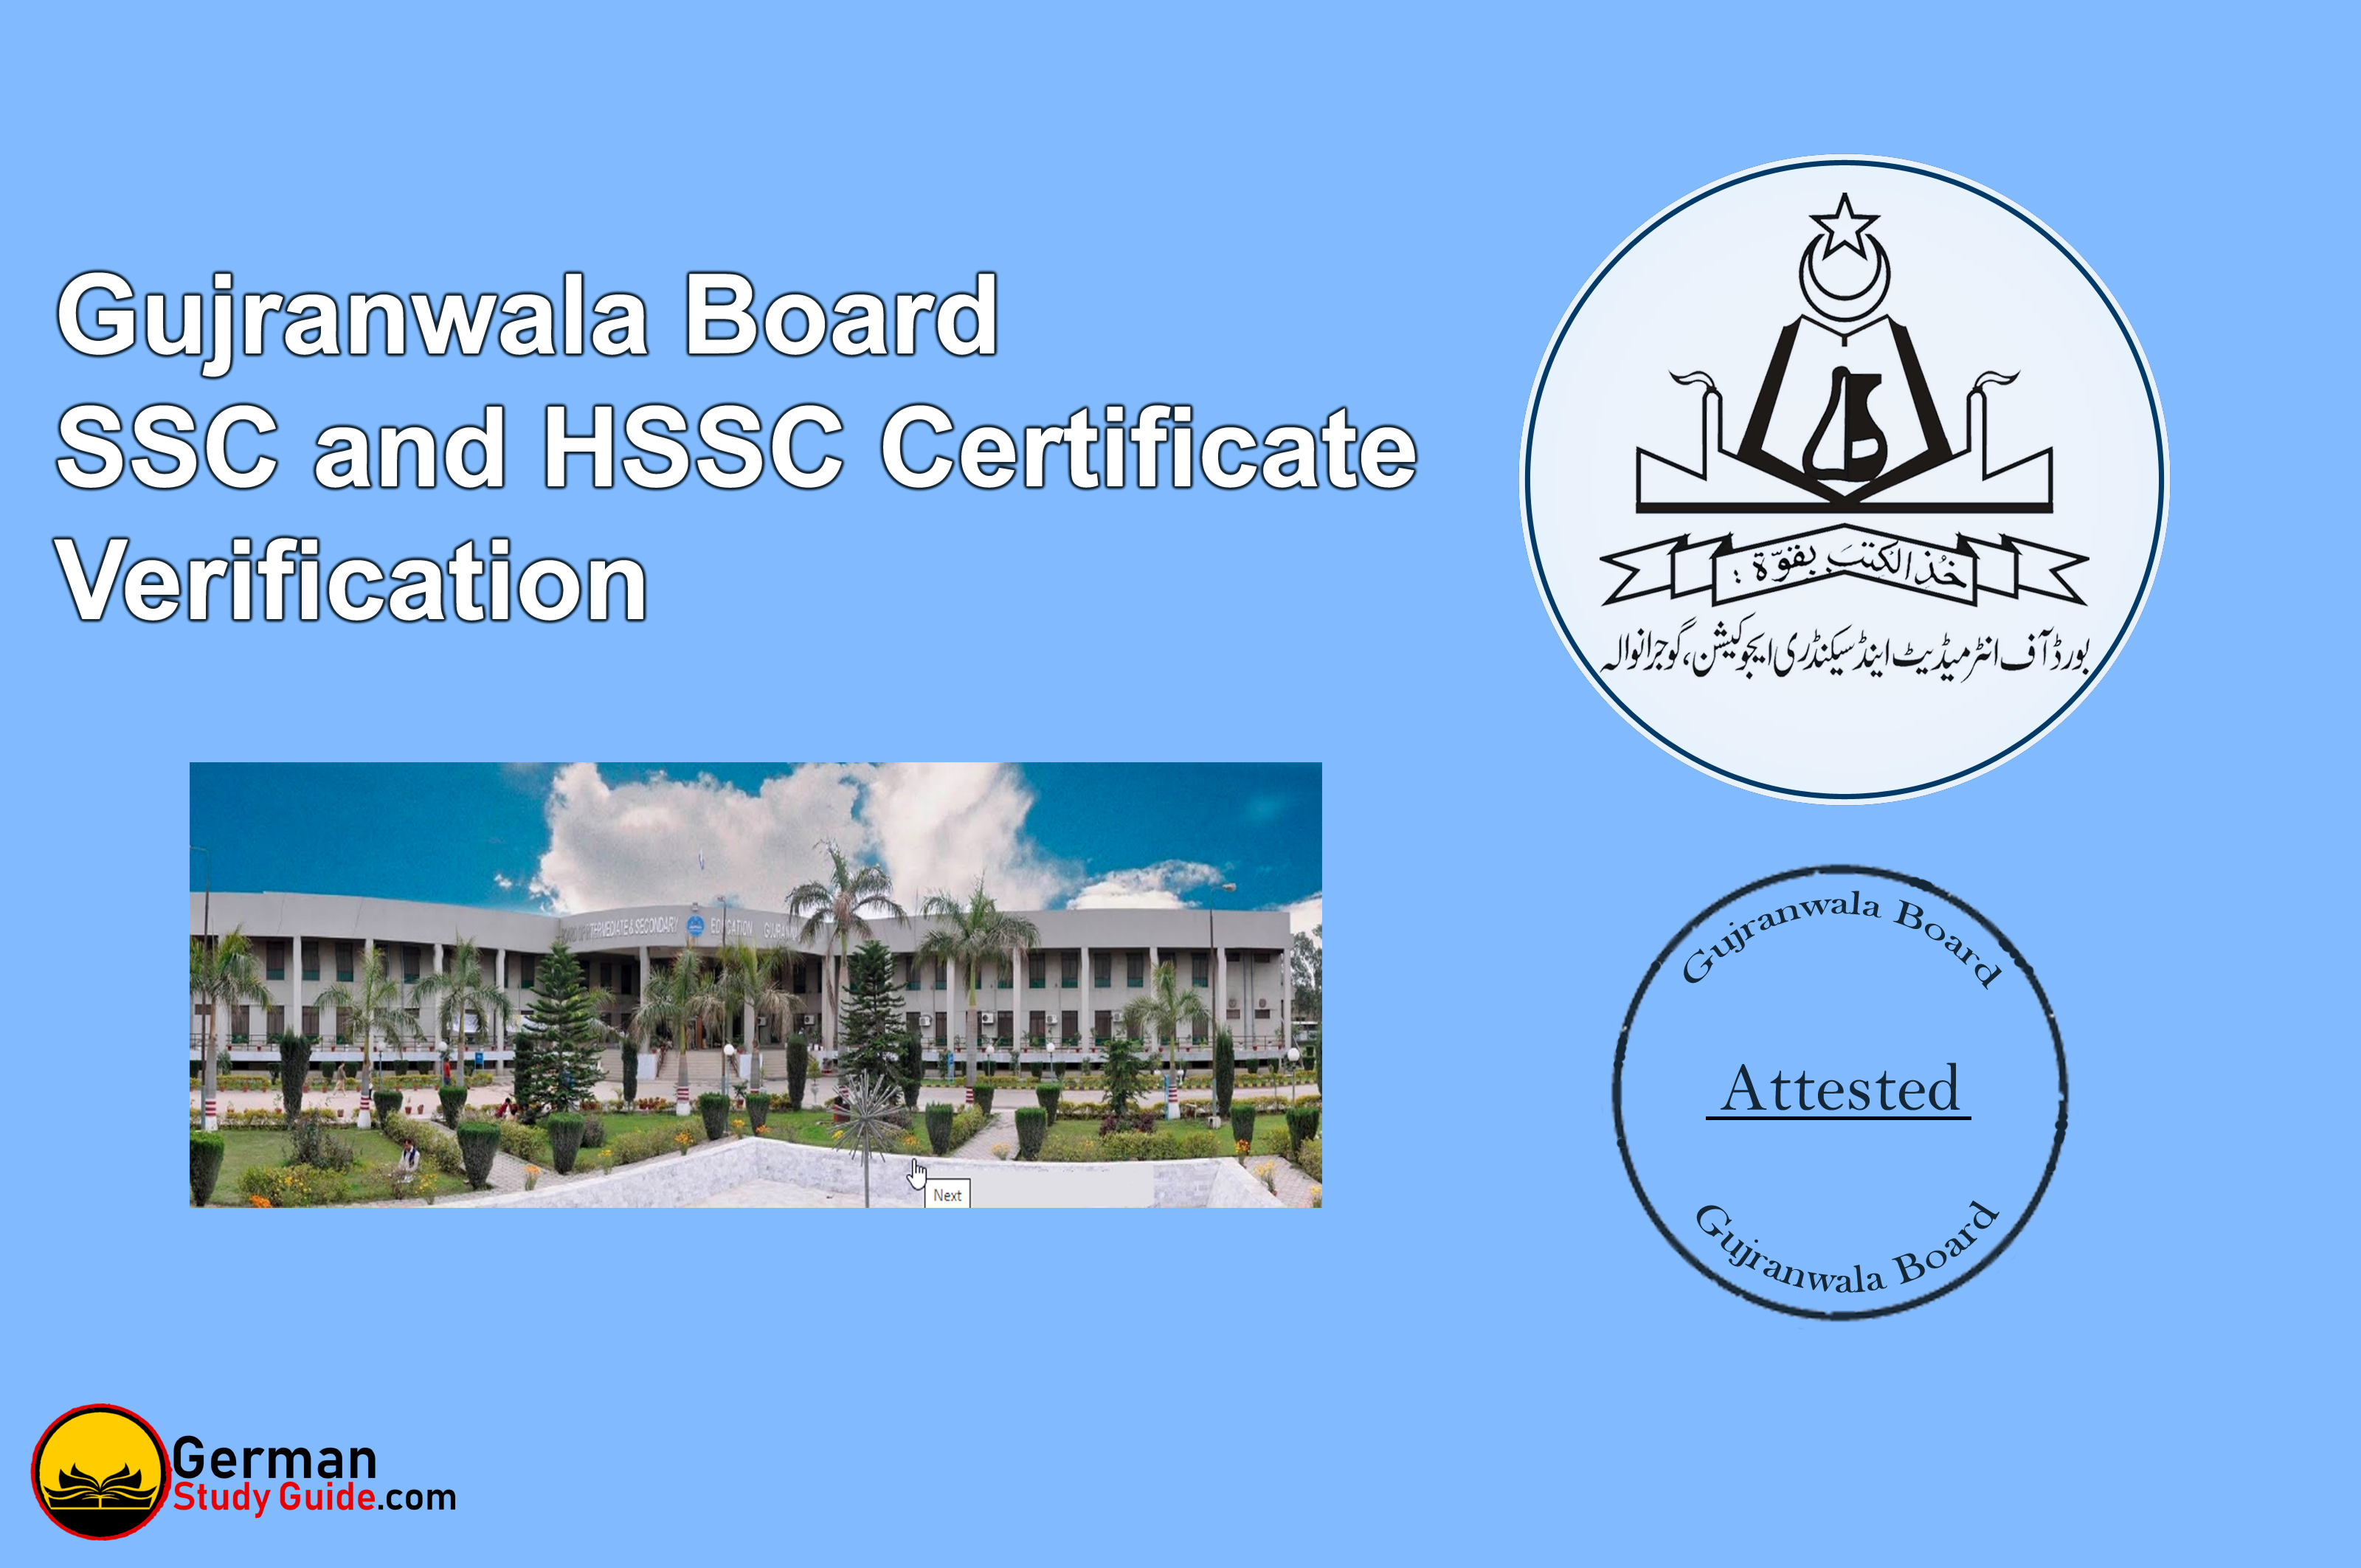 Gujranwala Board SSC and HSSC certificate verification